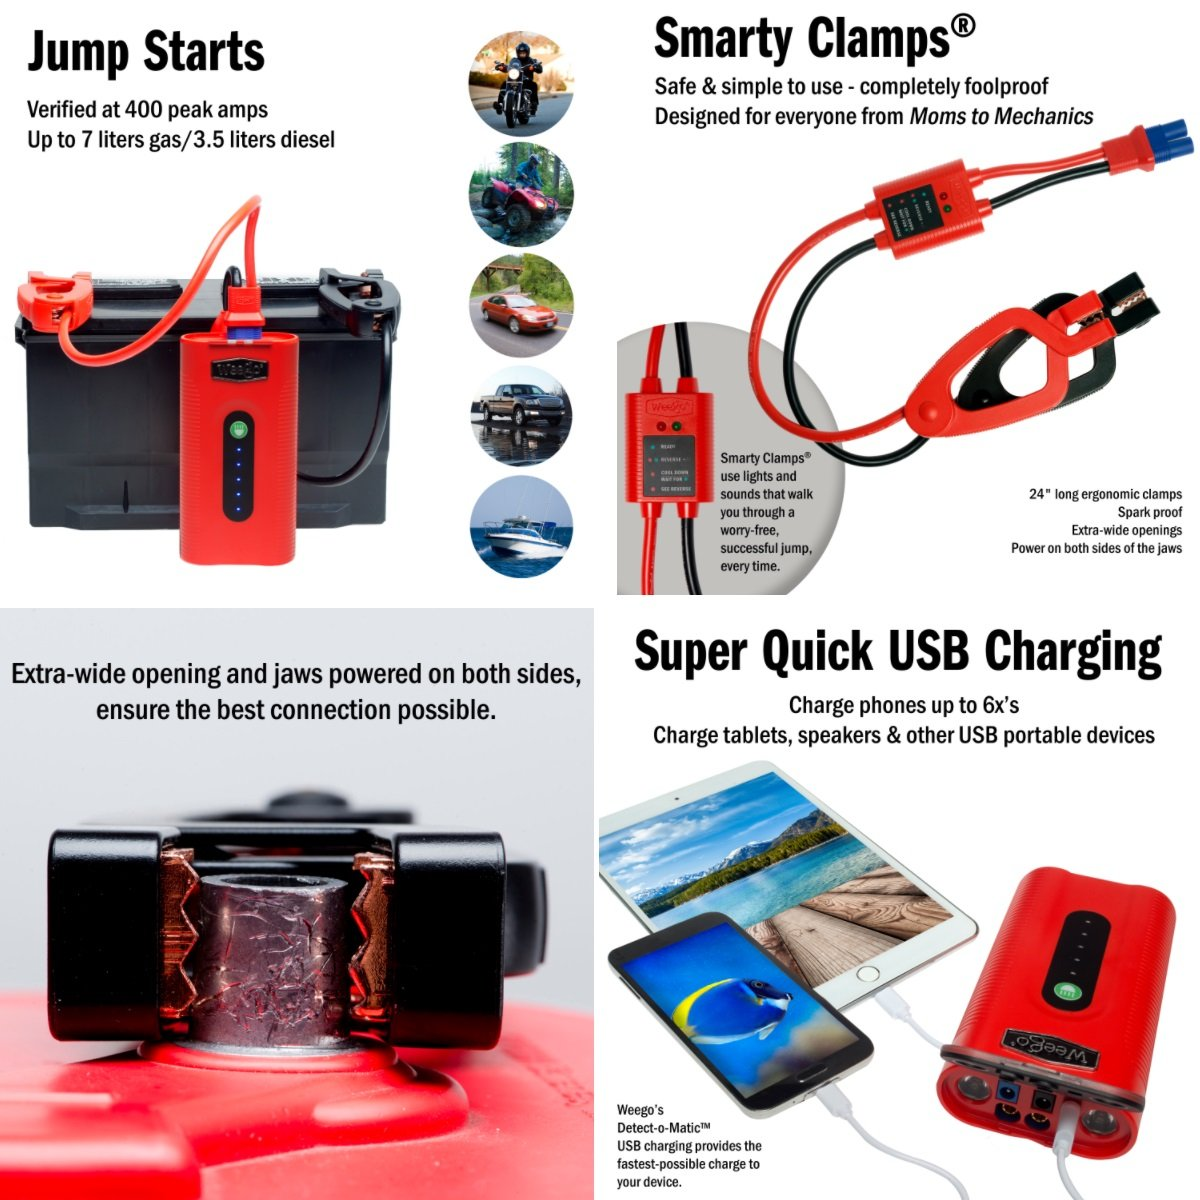 Weego N44/JSFSA Jump Starter 44 with 12v DC Adapter Cable Bundle - Jump Starts 7L Gas & 3.5L Diesel Engines by Weego (Image #3)